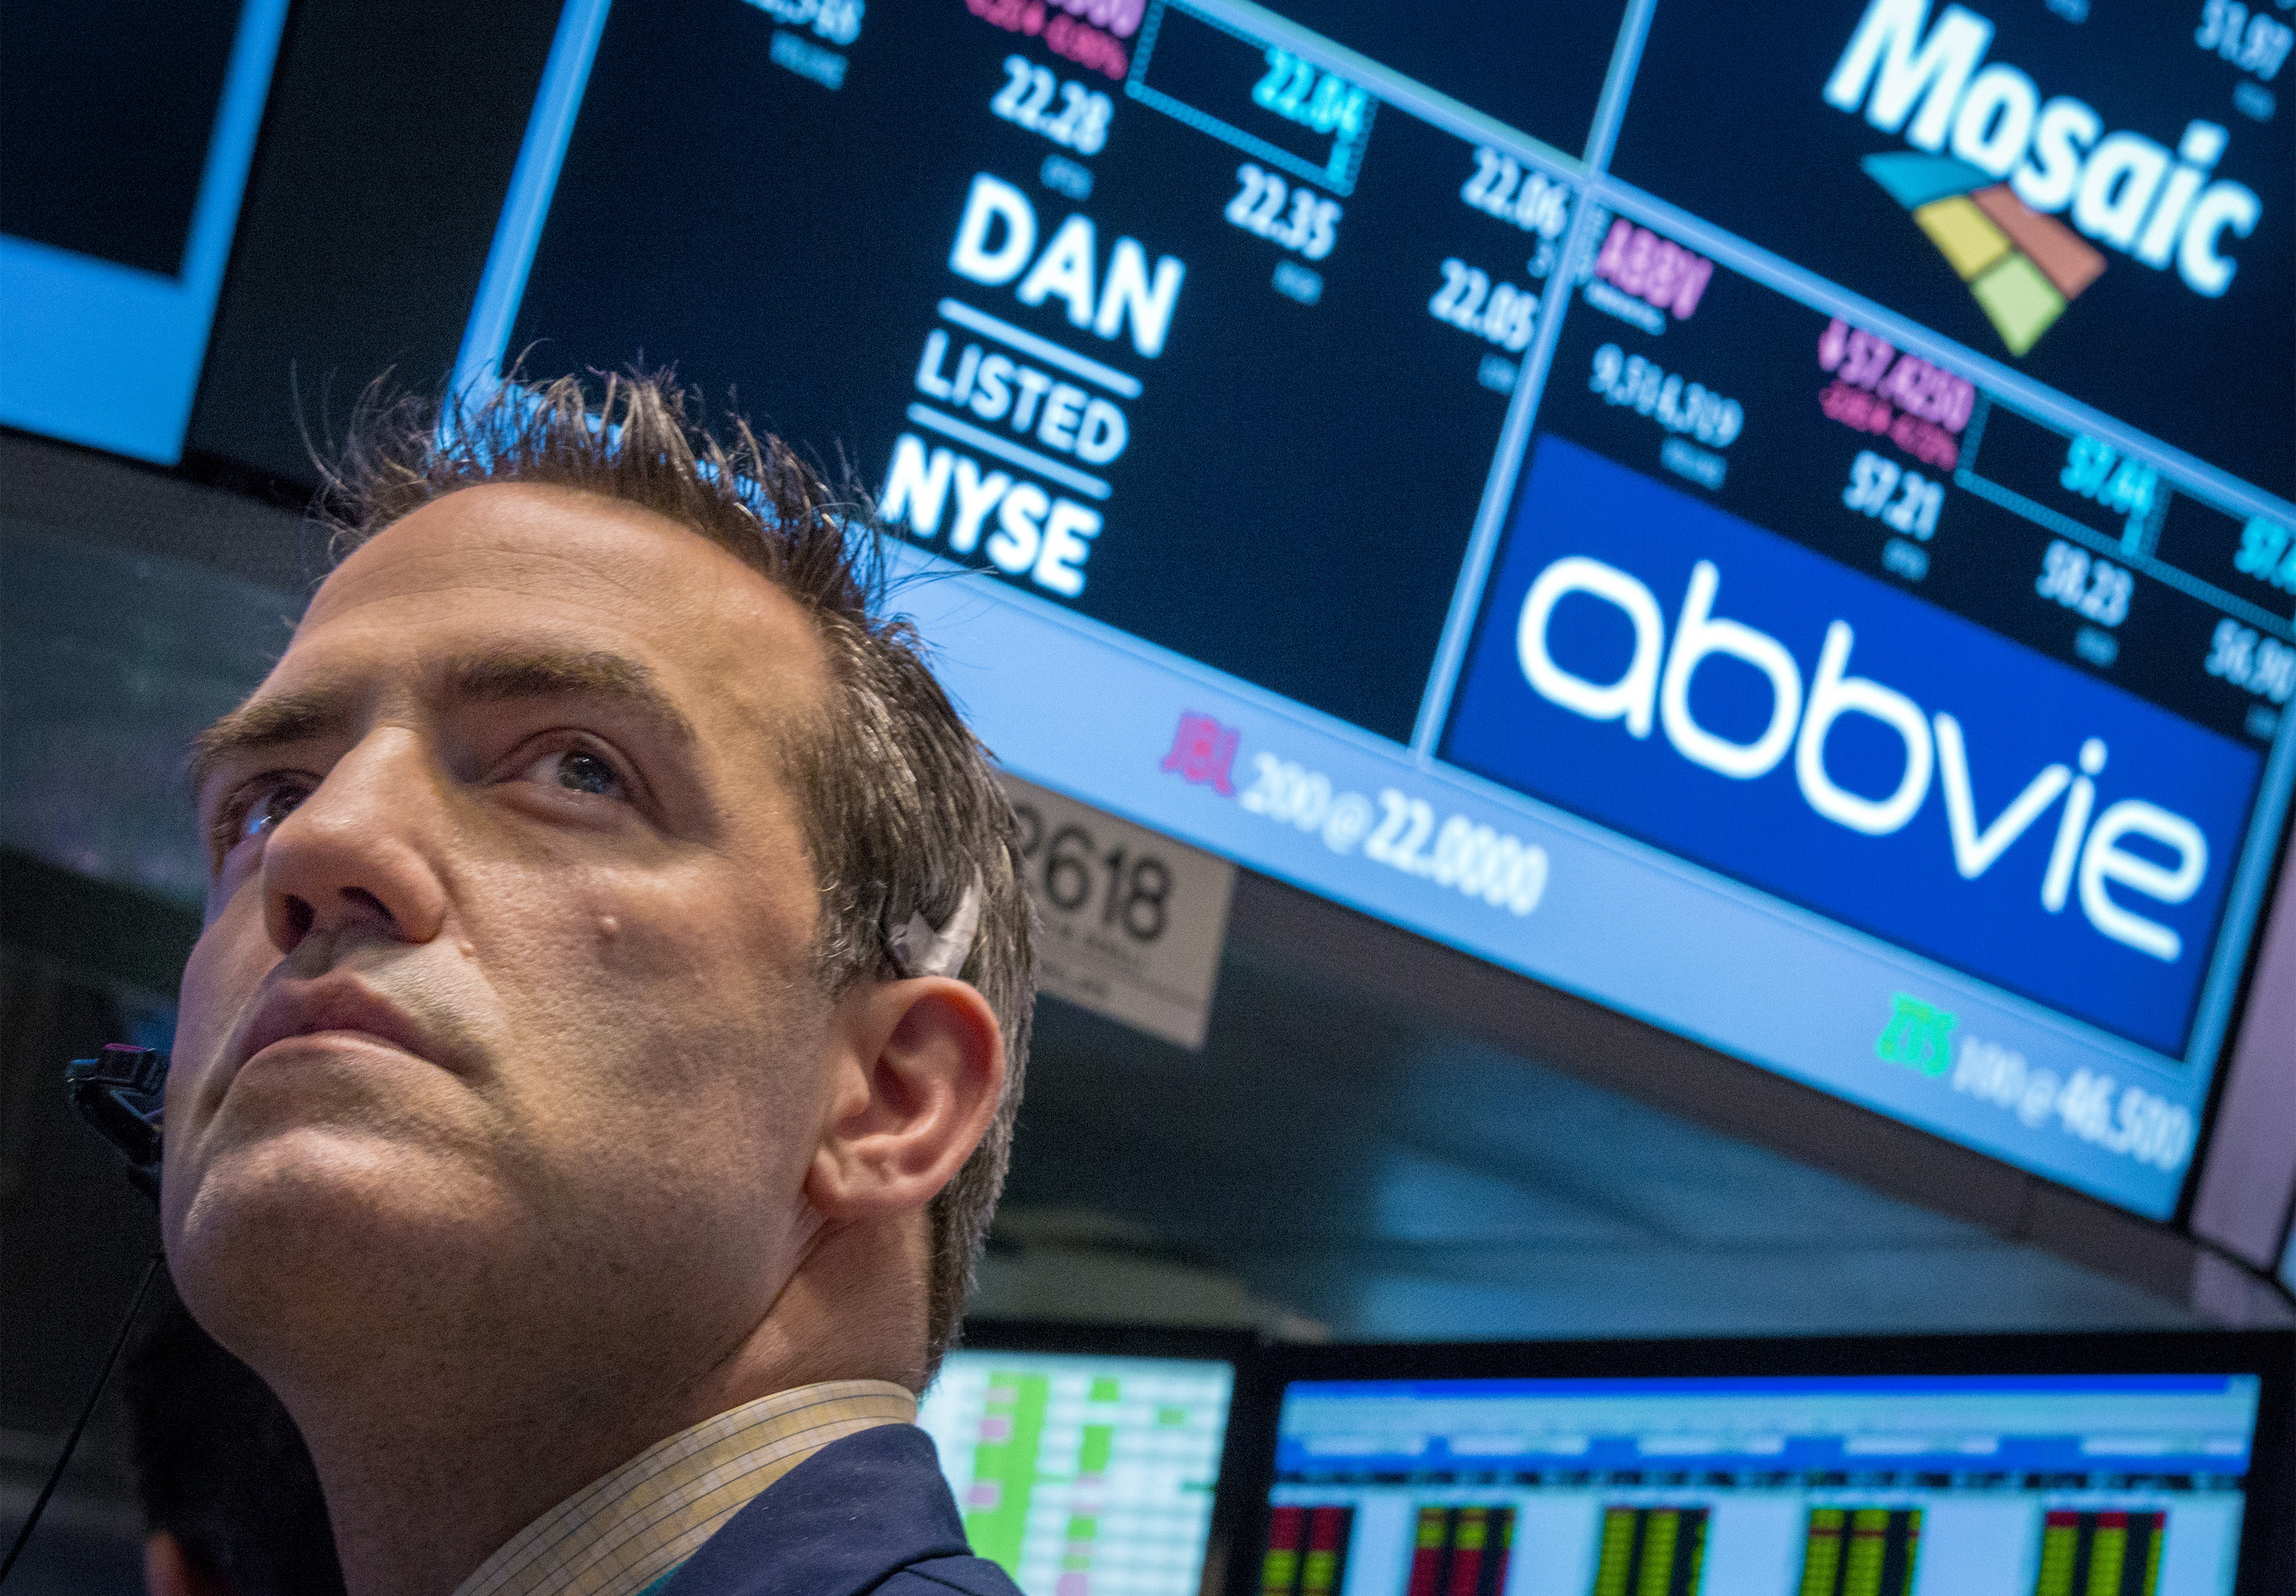 A trader works by the post that trades AbbVie on the floor of the New York Stock Exchange March 5, 2015. AbbVie Inc said on Thursday it fought two other drugmakers to